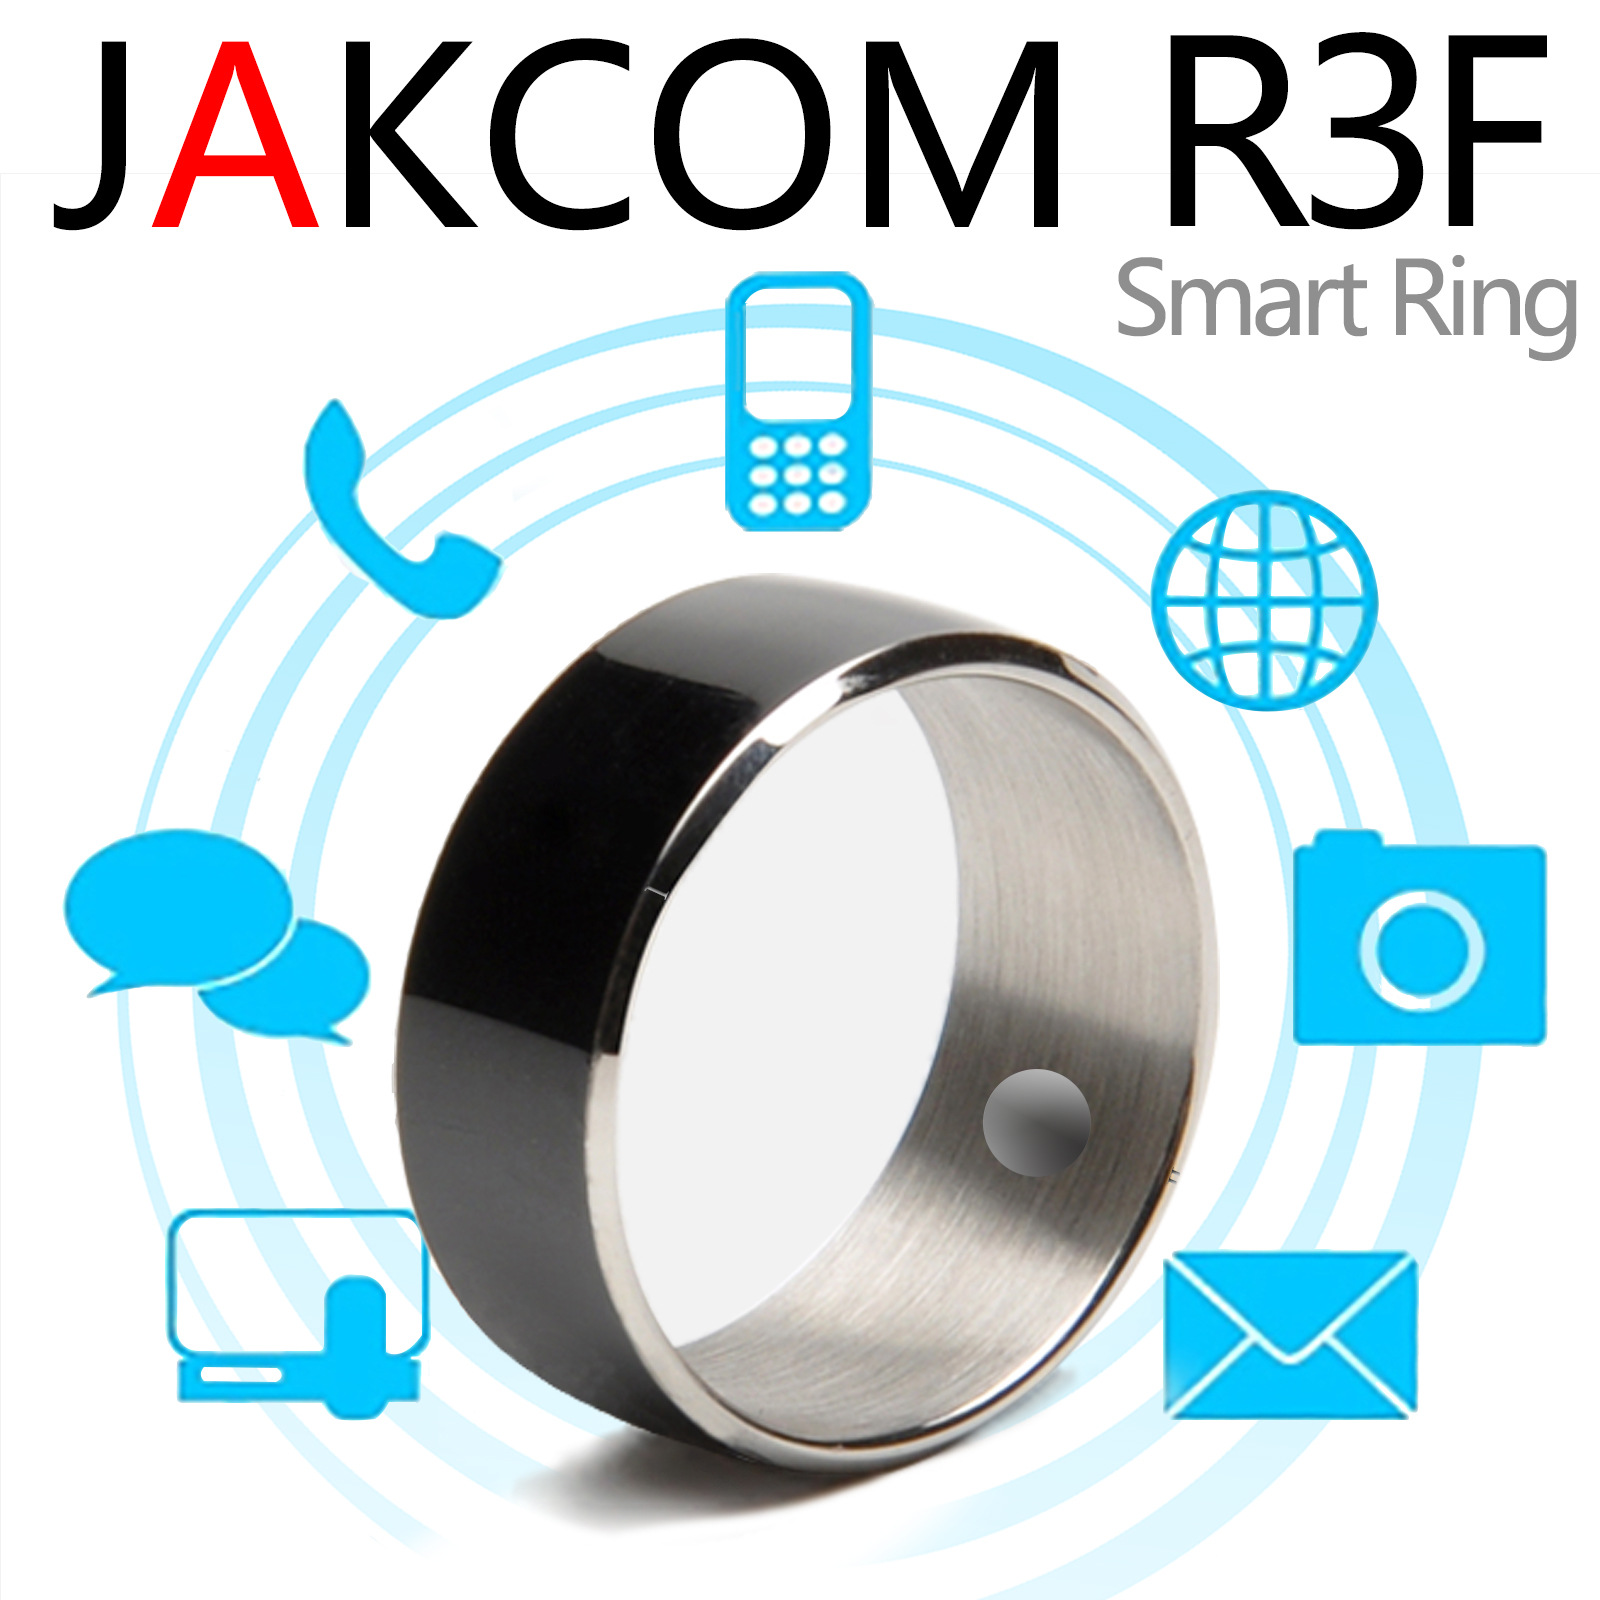 Jakcom R3F Smart Ring For High Speed NFC Electronics Phone Smart Accessories Enabled Wearable Technology Magic NFC Ring